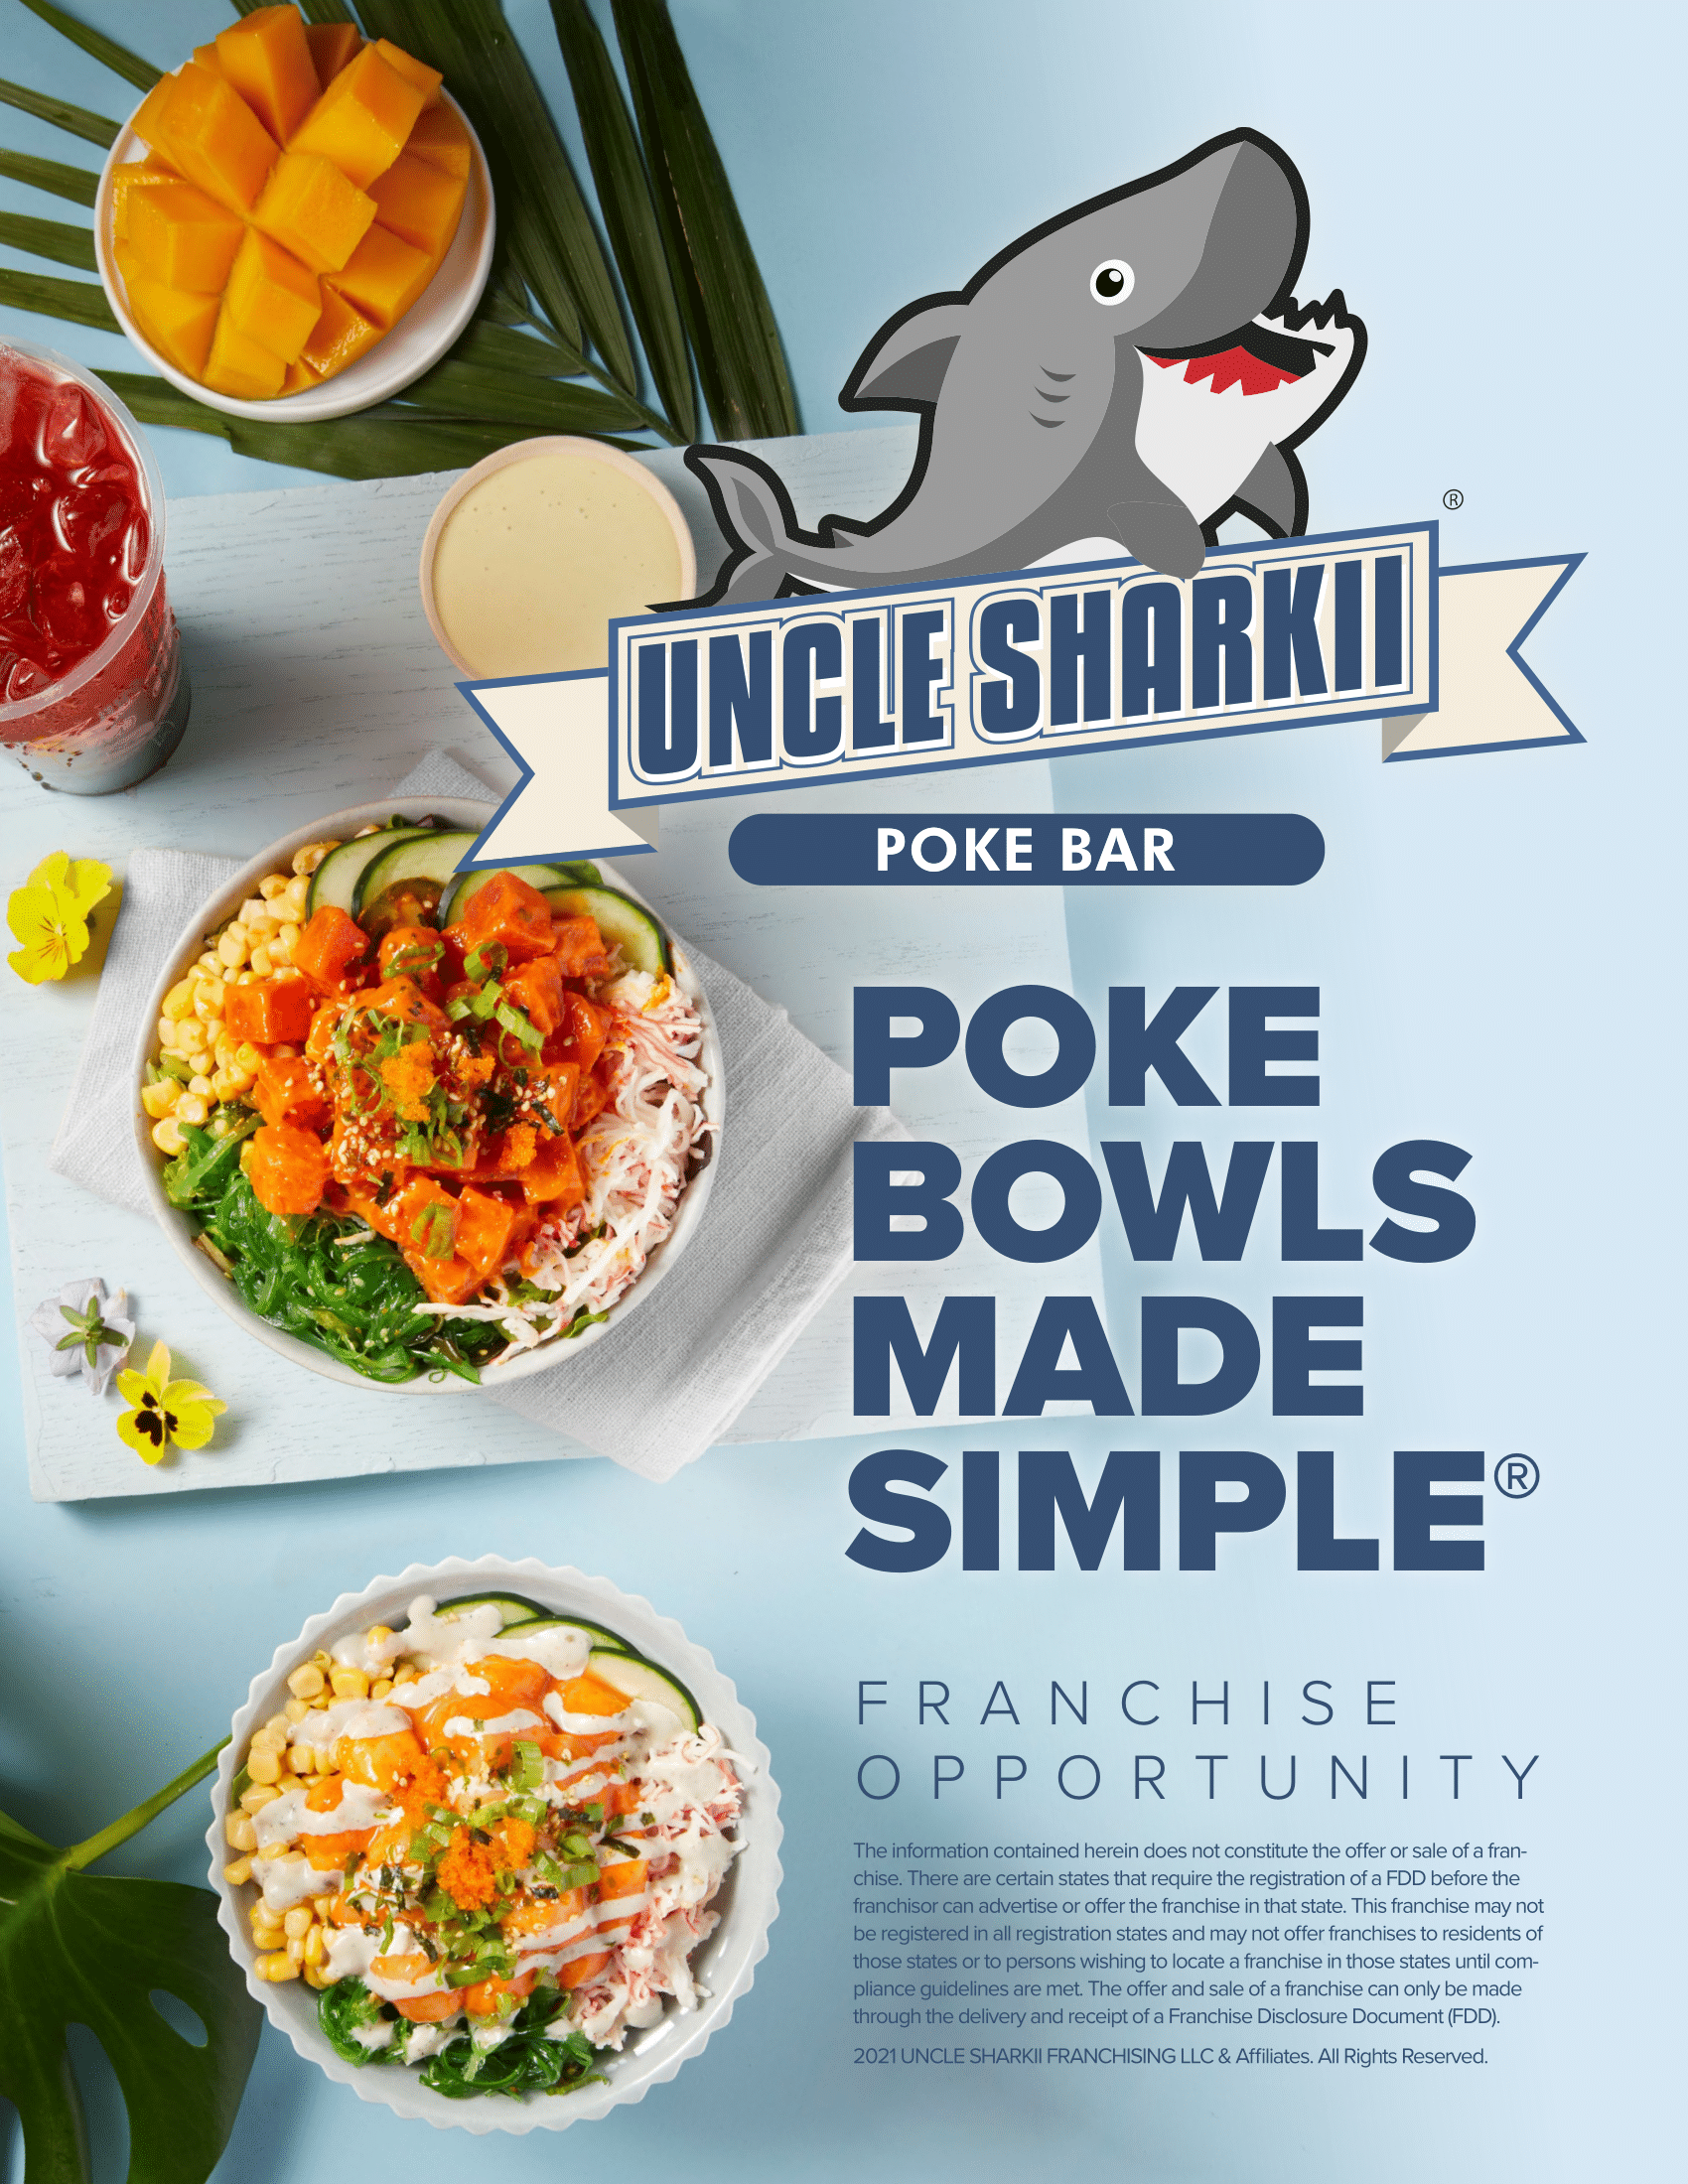 Franchise Opportunity Brochure for Uncle Sharkii - click for pdf